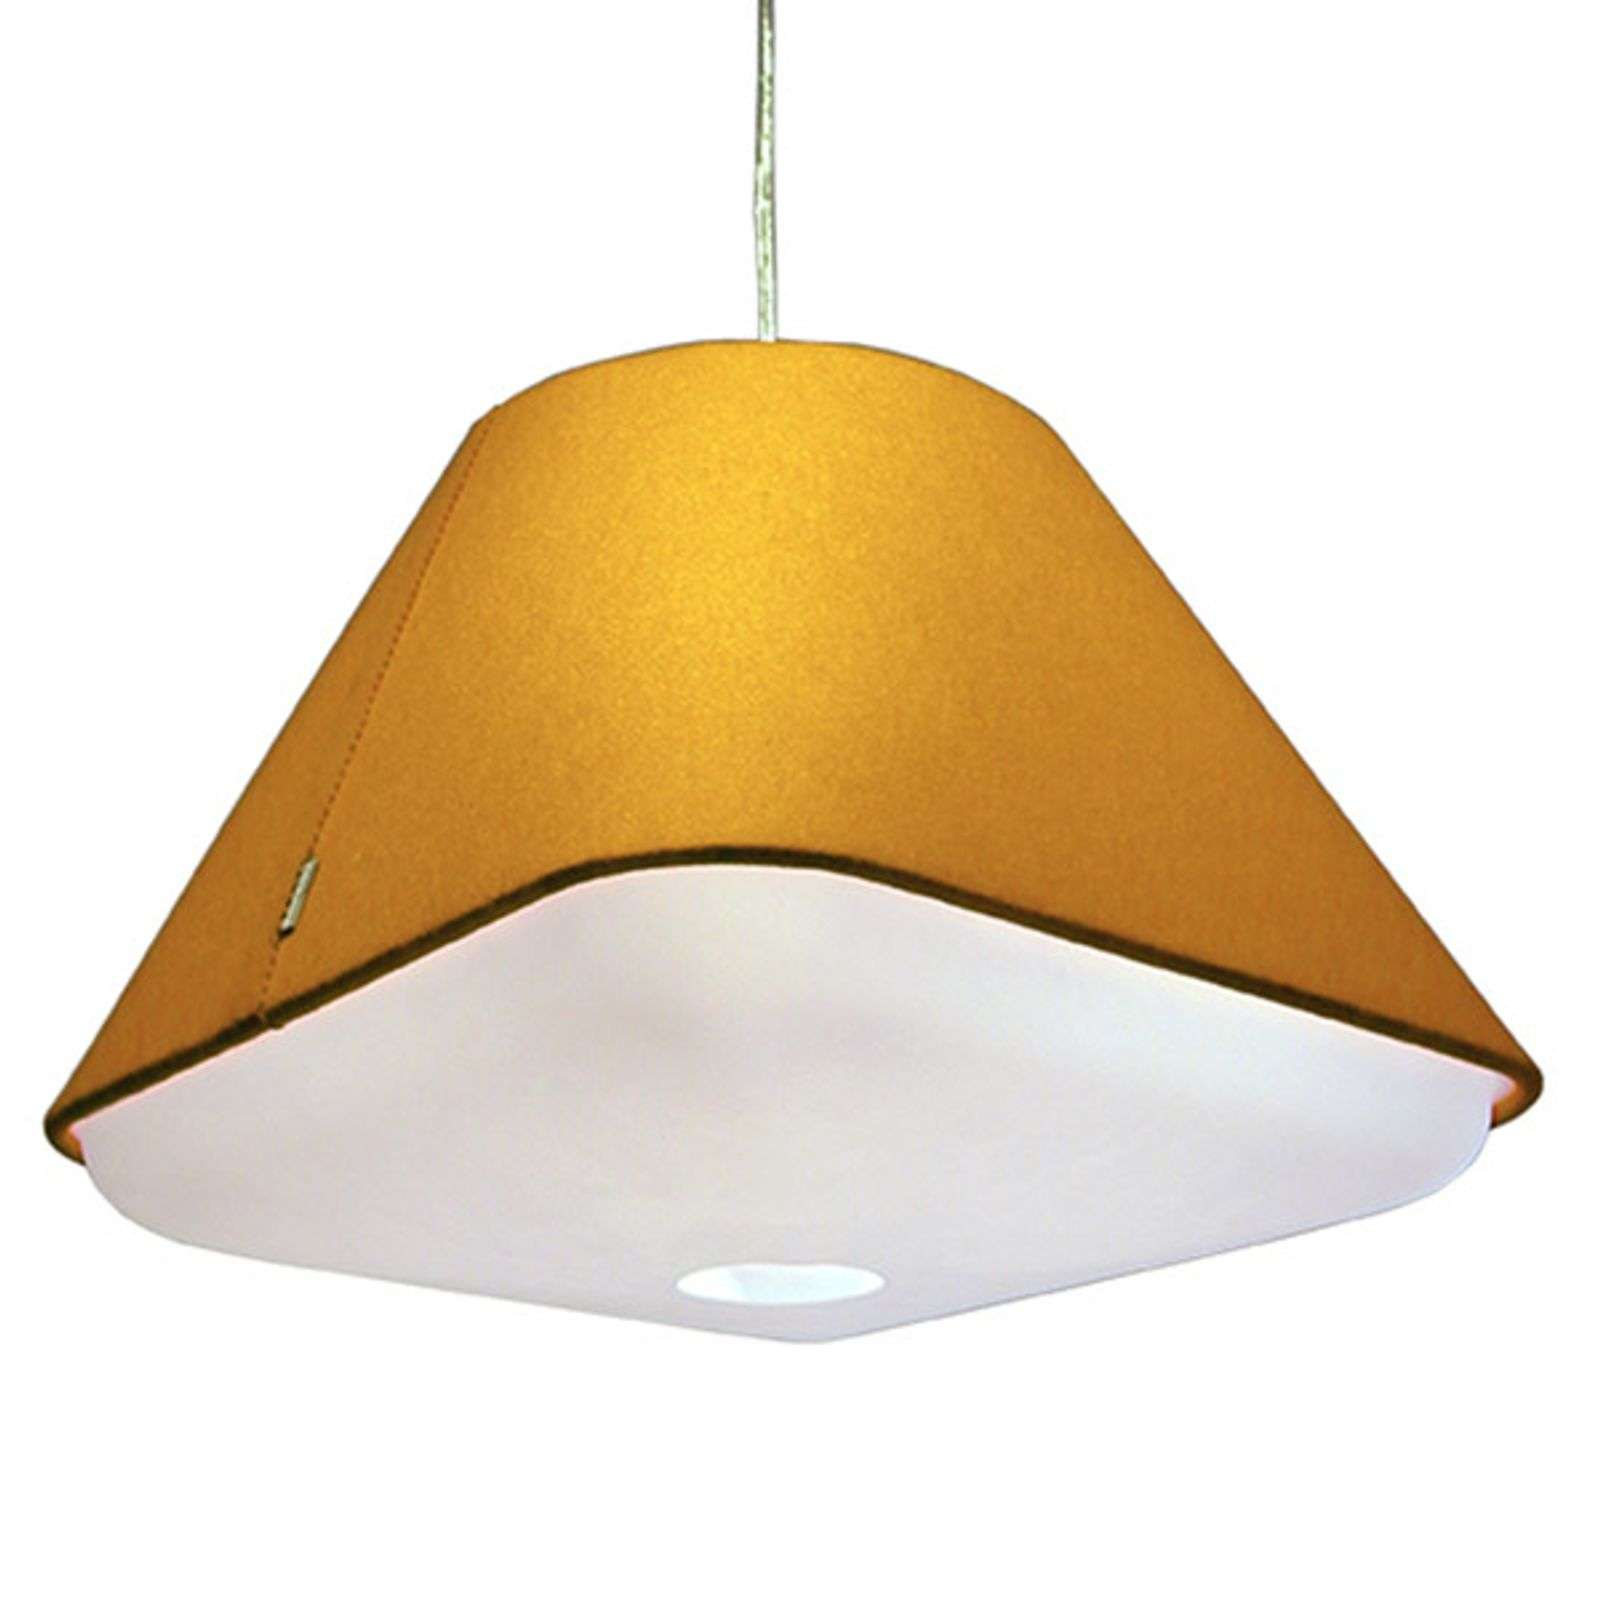 Innermost RD2SQ 40 - suspension couleur ocre